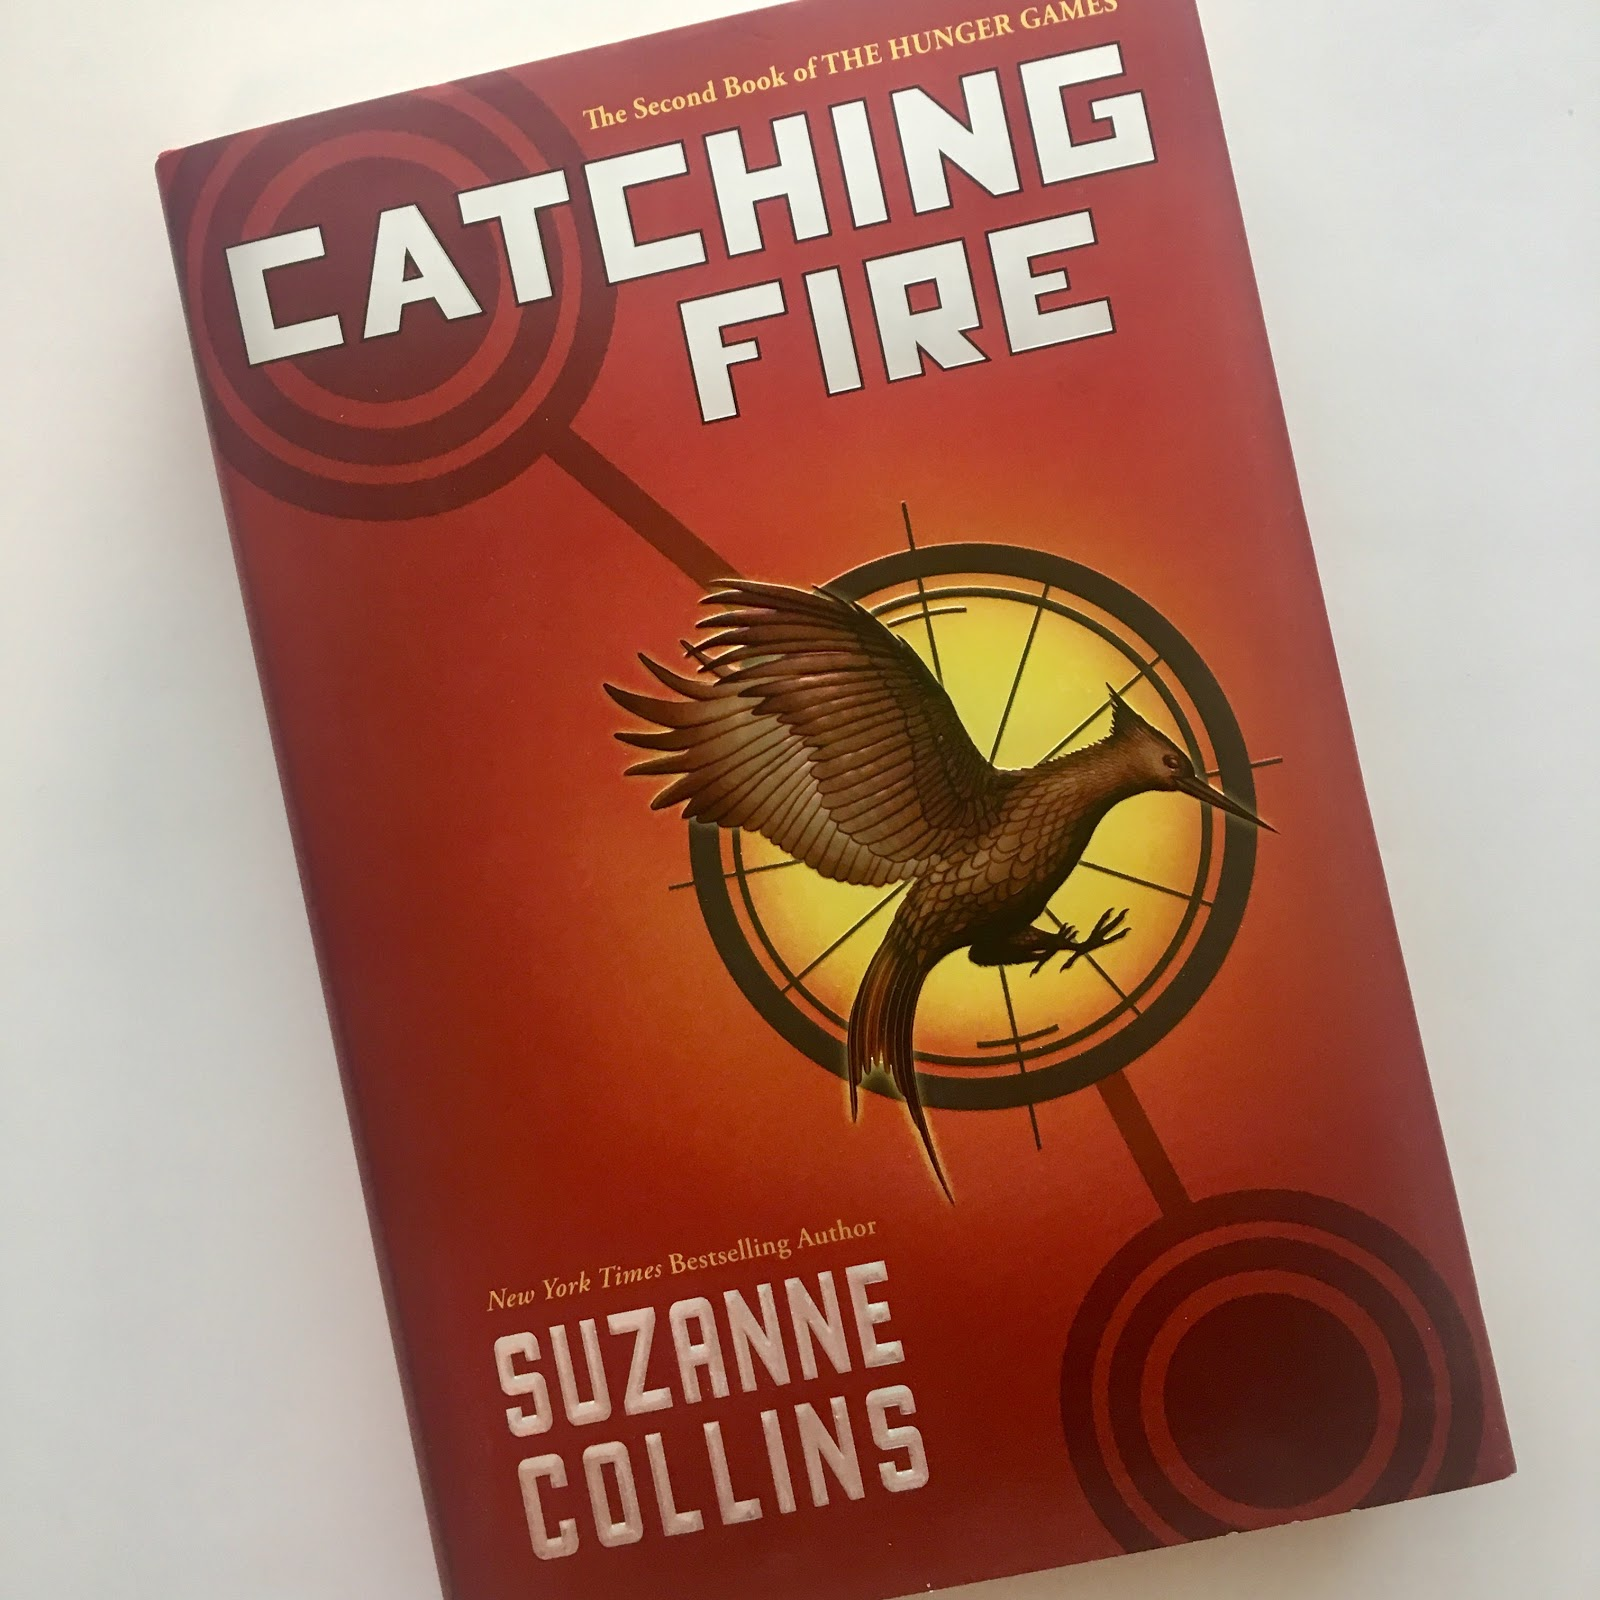 Suzanne Collins Catching Fire Excerpt